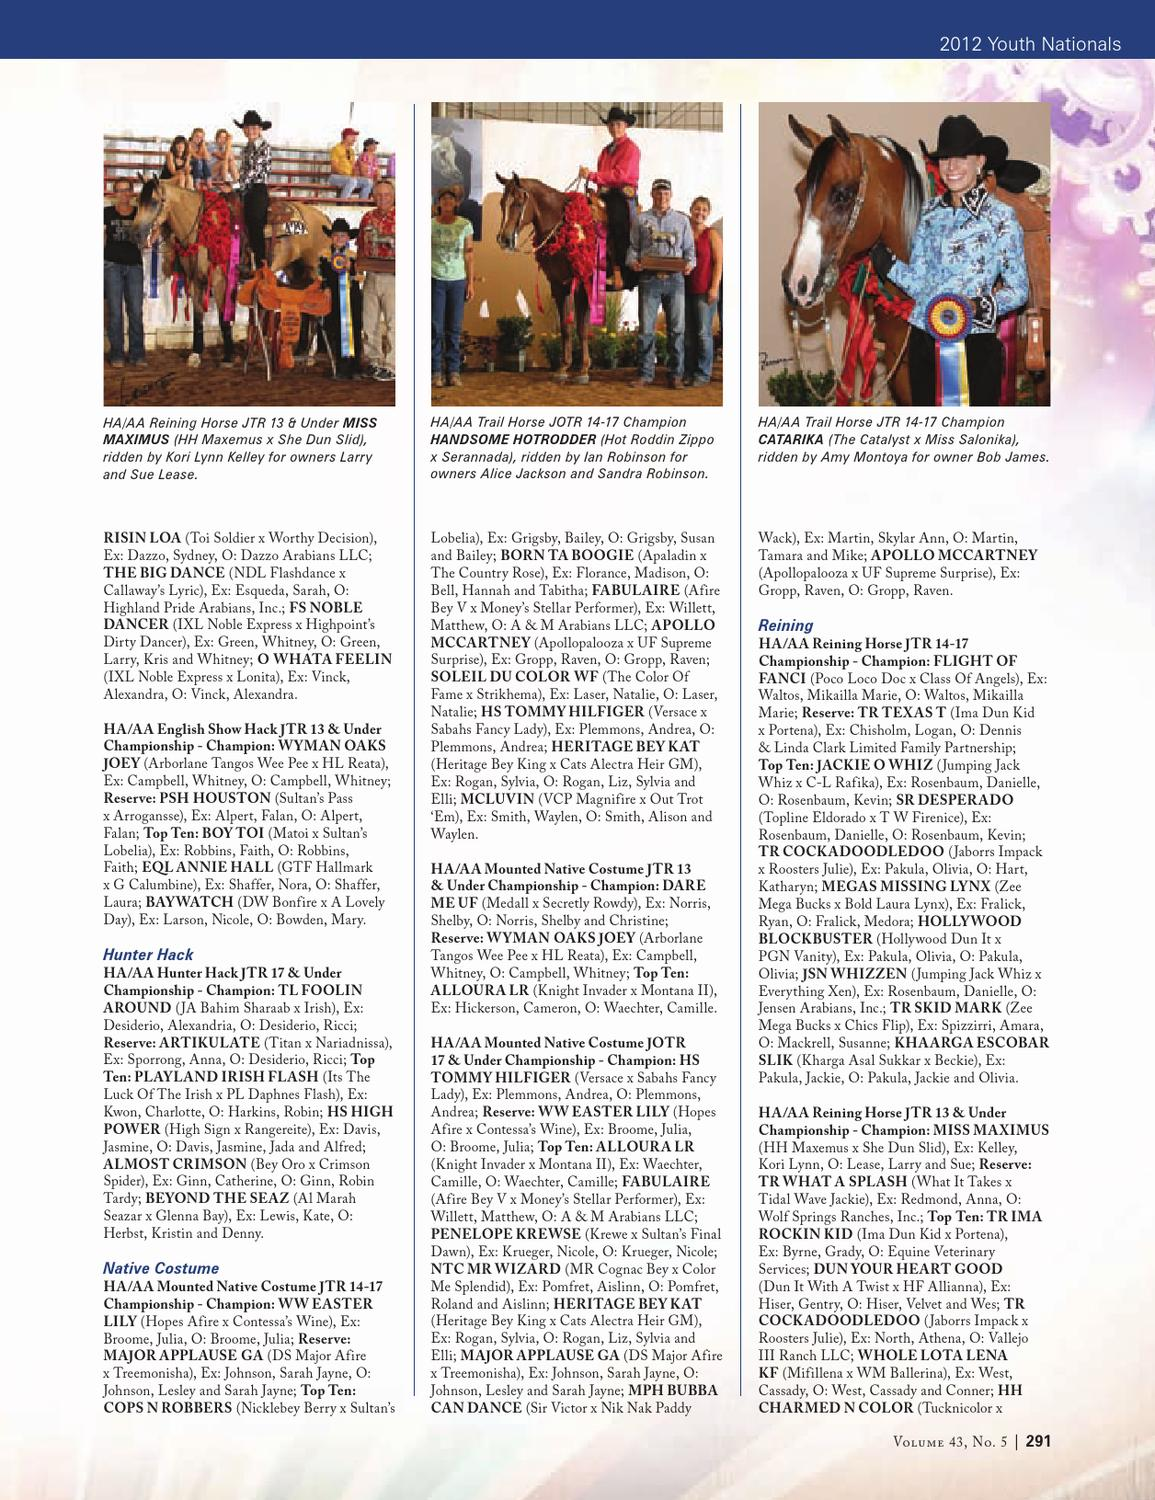 Arabian Horse Times Vol  43, No  5 by Arabian Horse Times - issuu